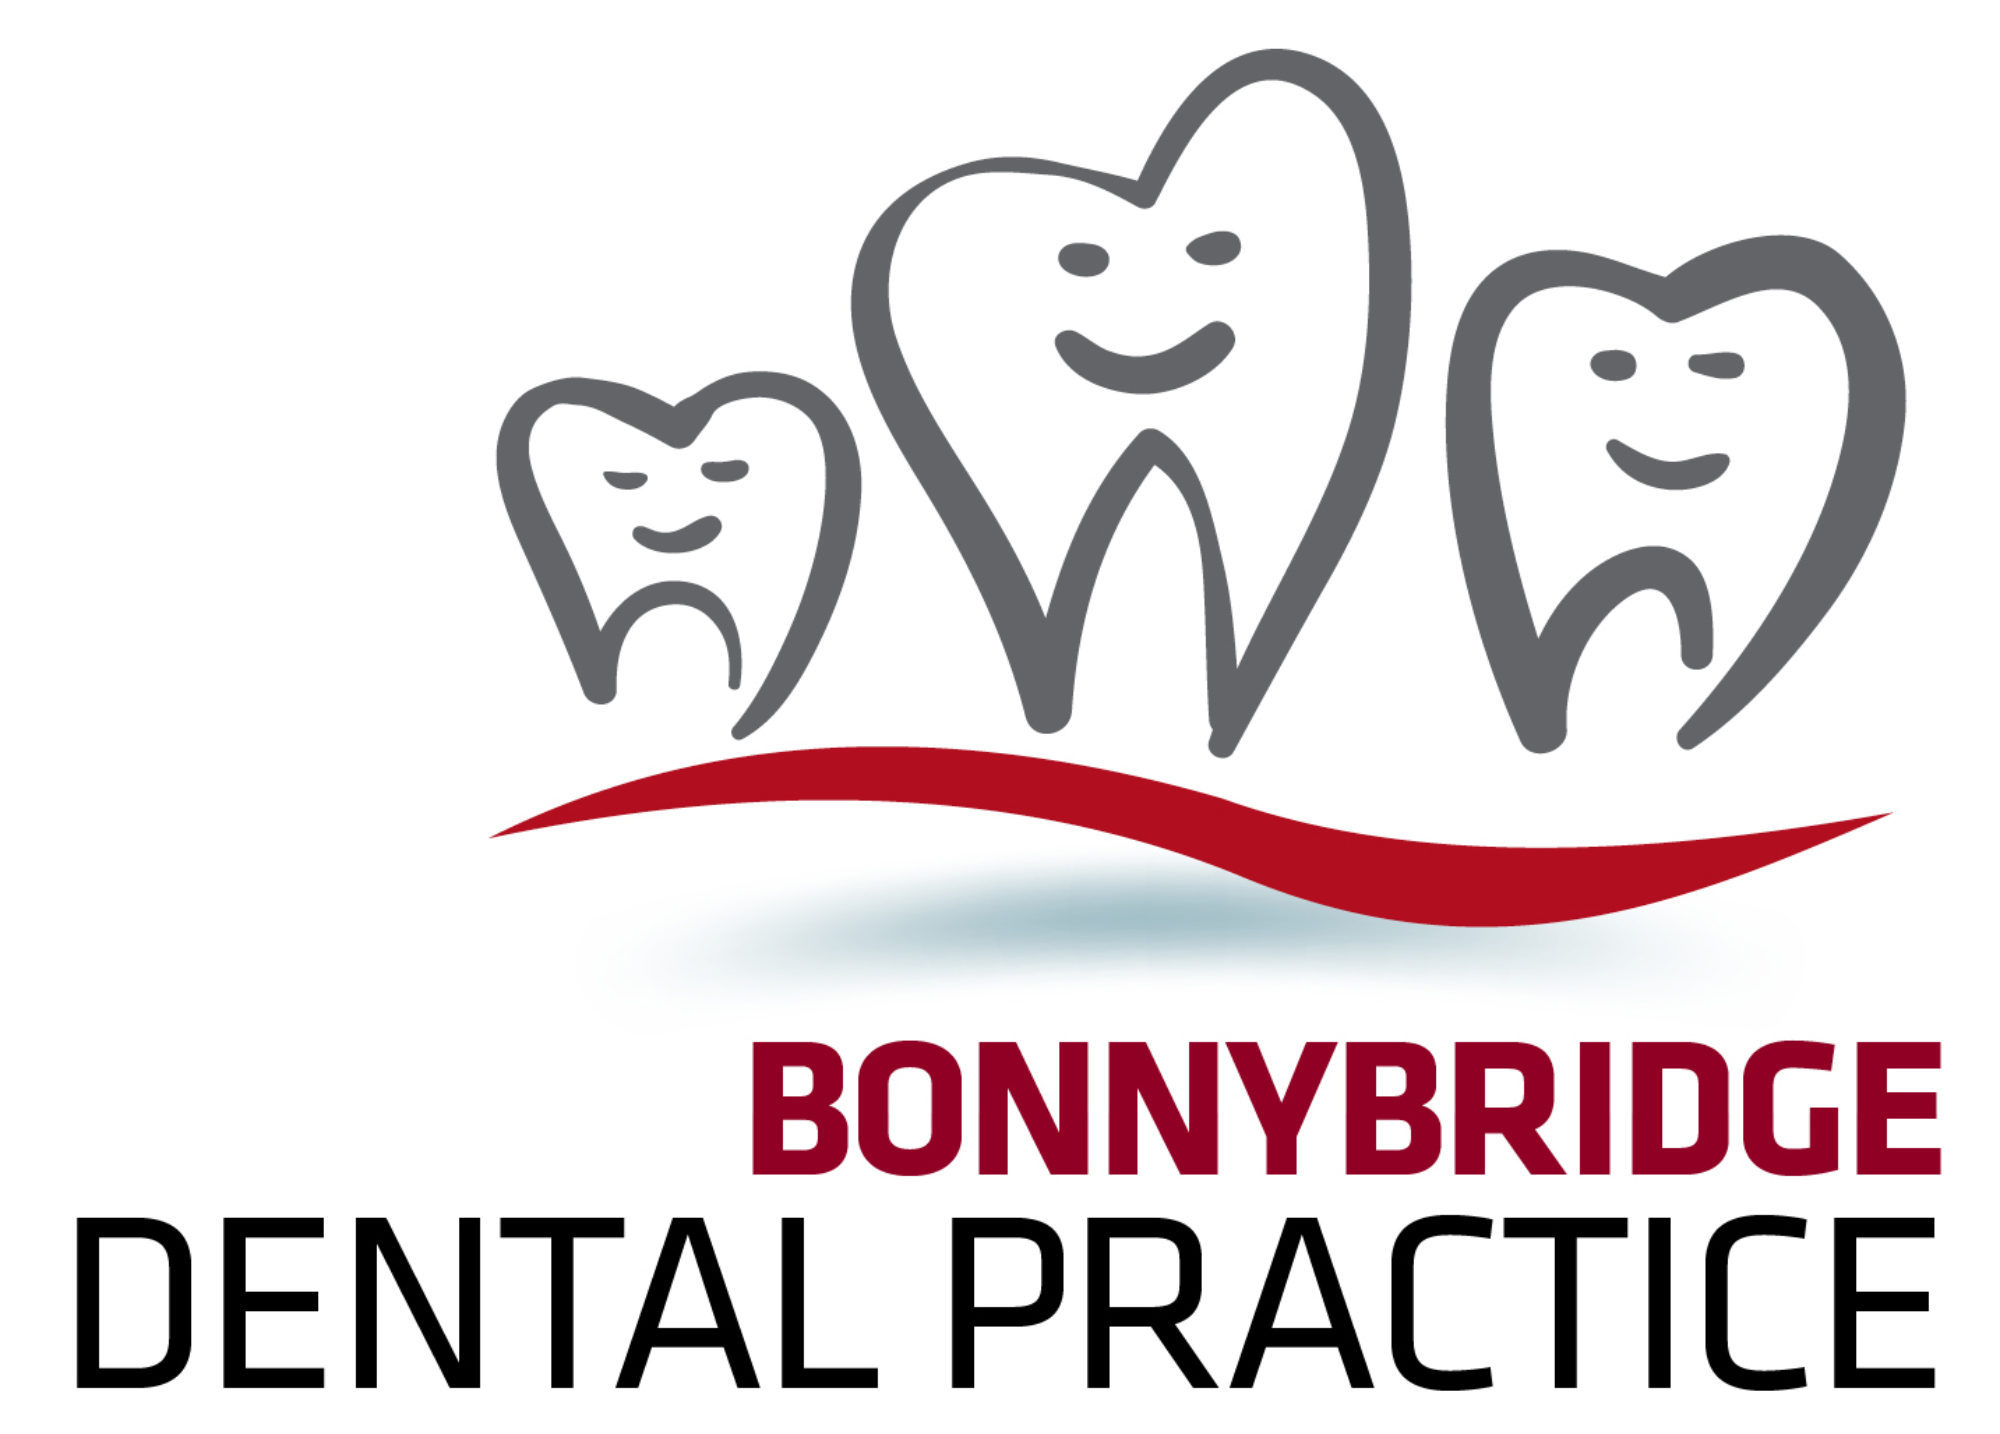 Bonnybridge Dental Practice